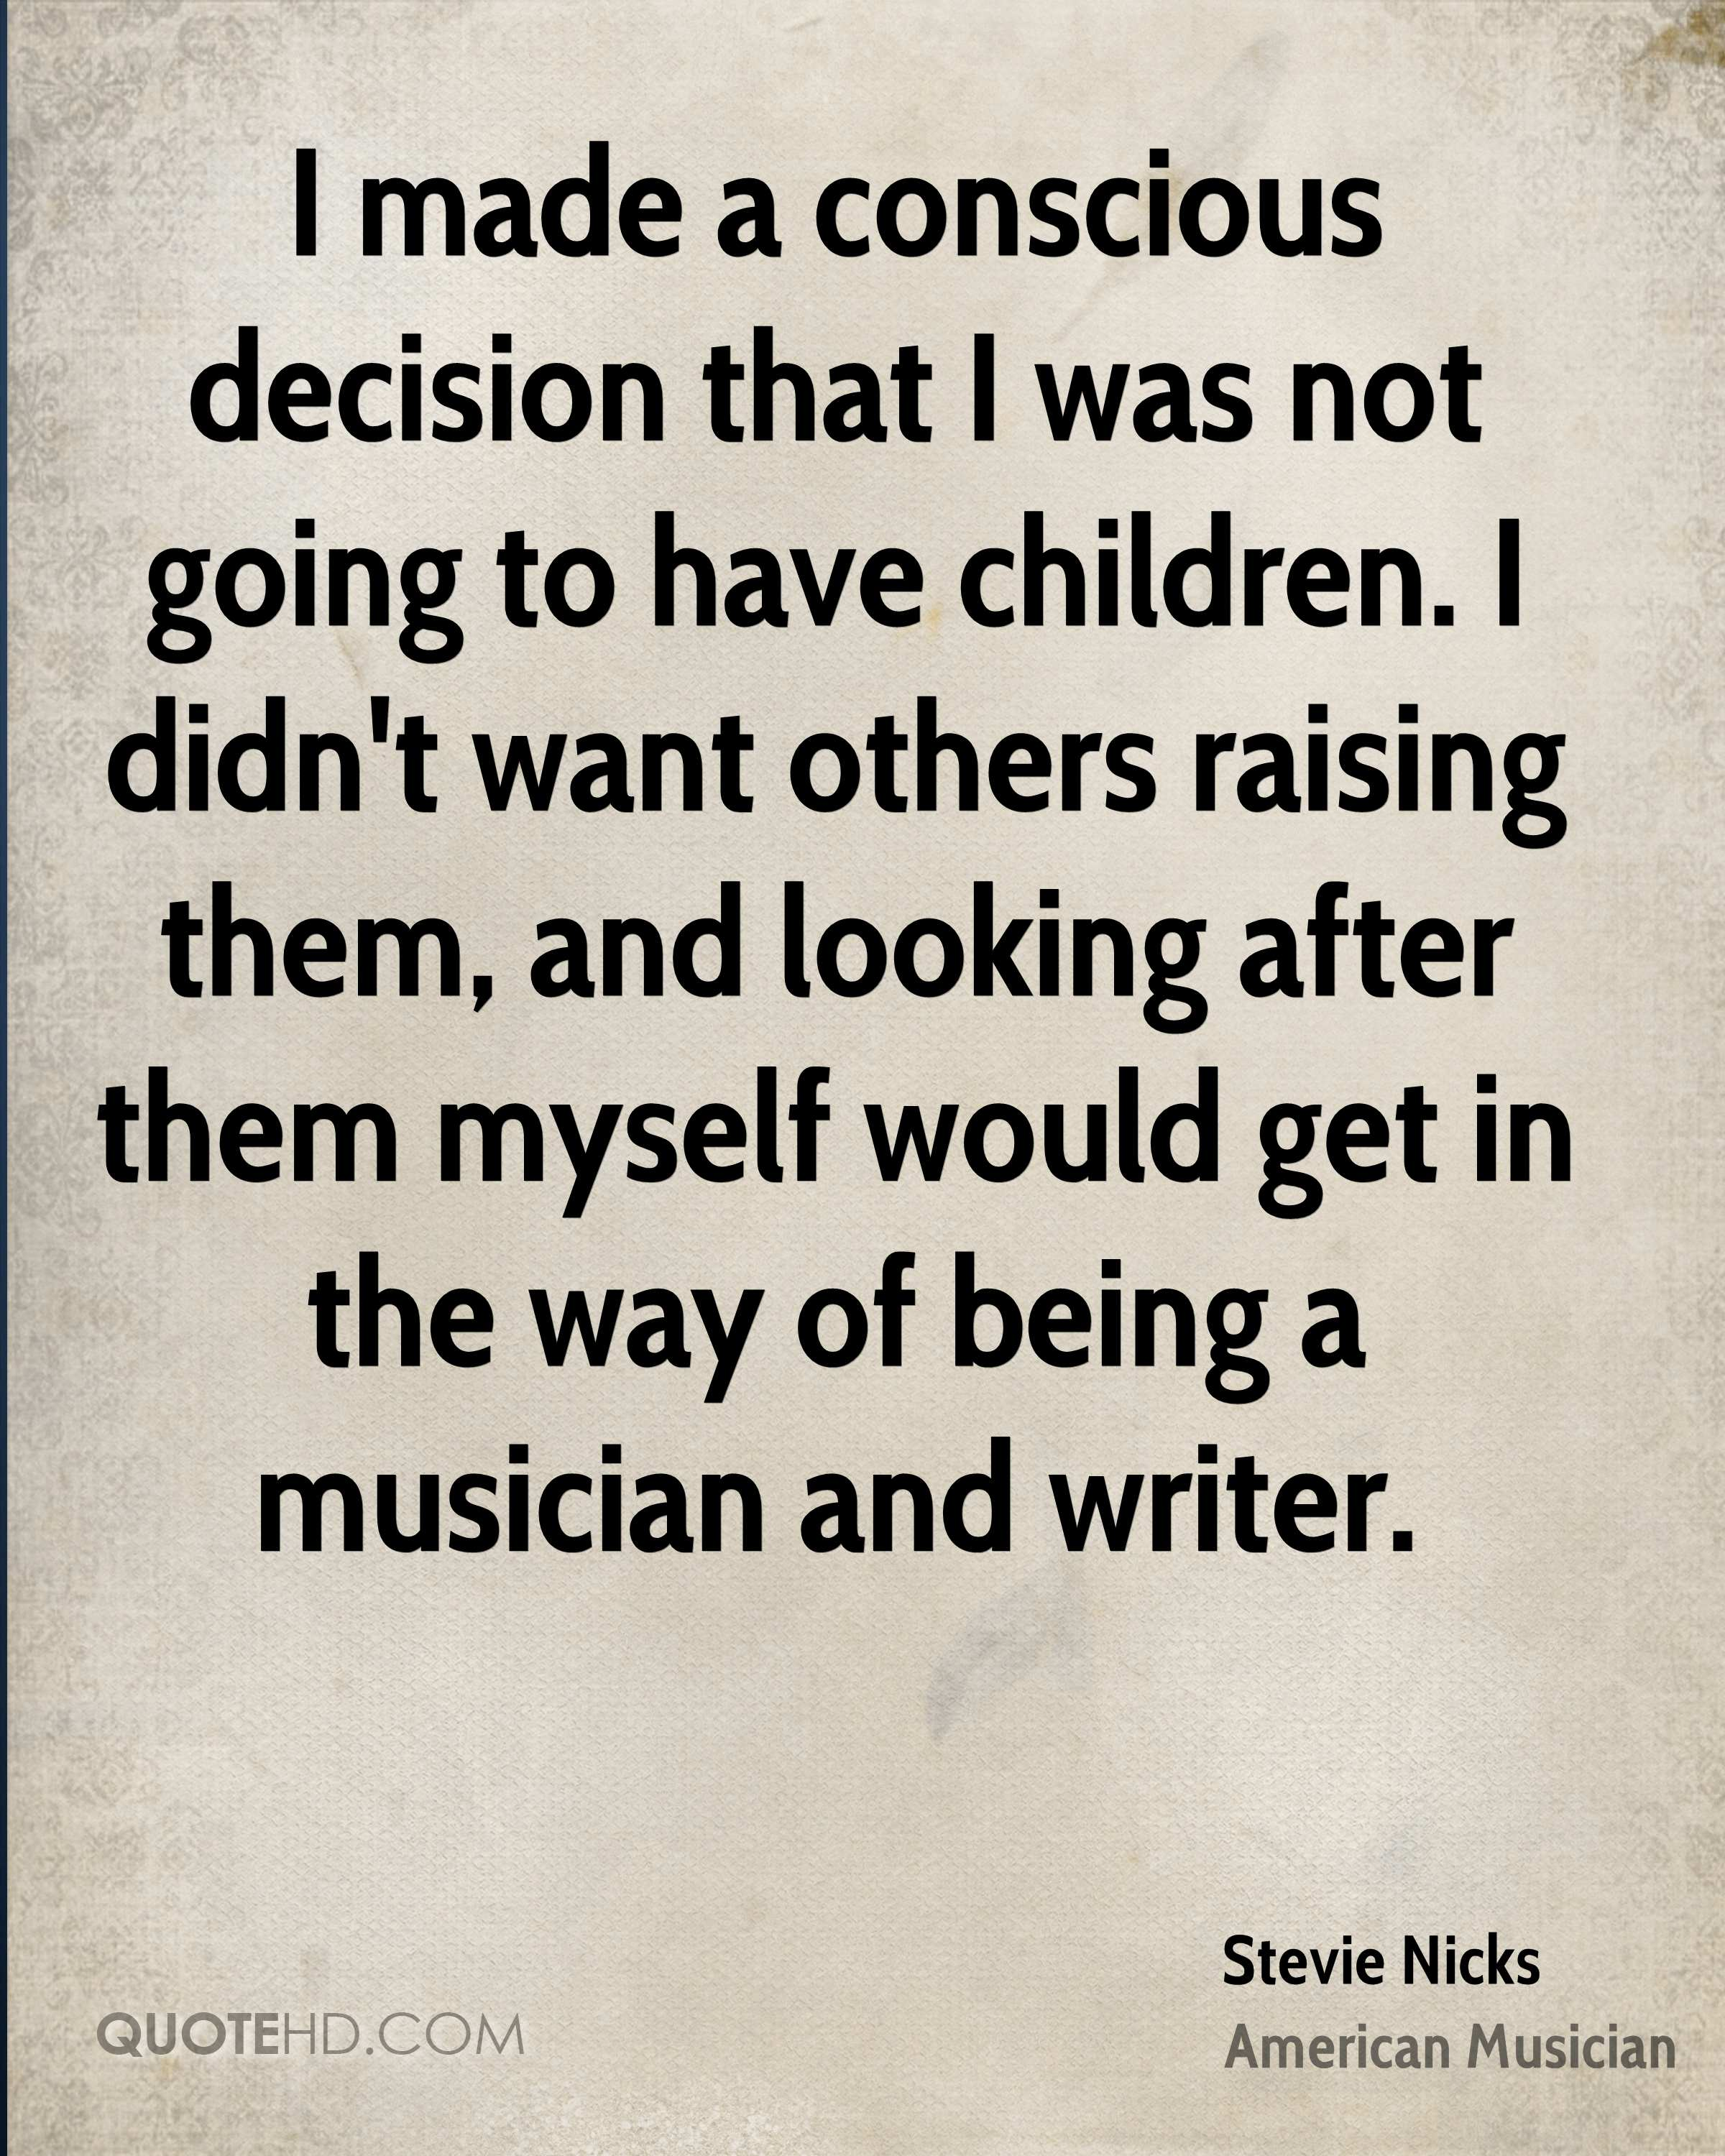 I made a conscious decision that I was not going to have children. I didn't want others raising them, and looking after them myself would get in the way of being a musician and writer.